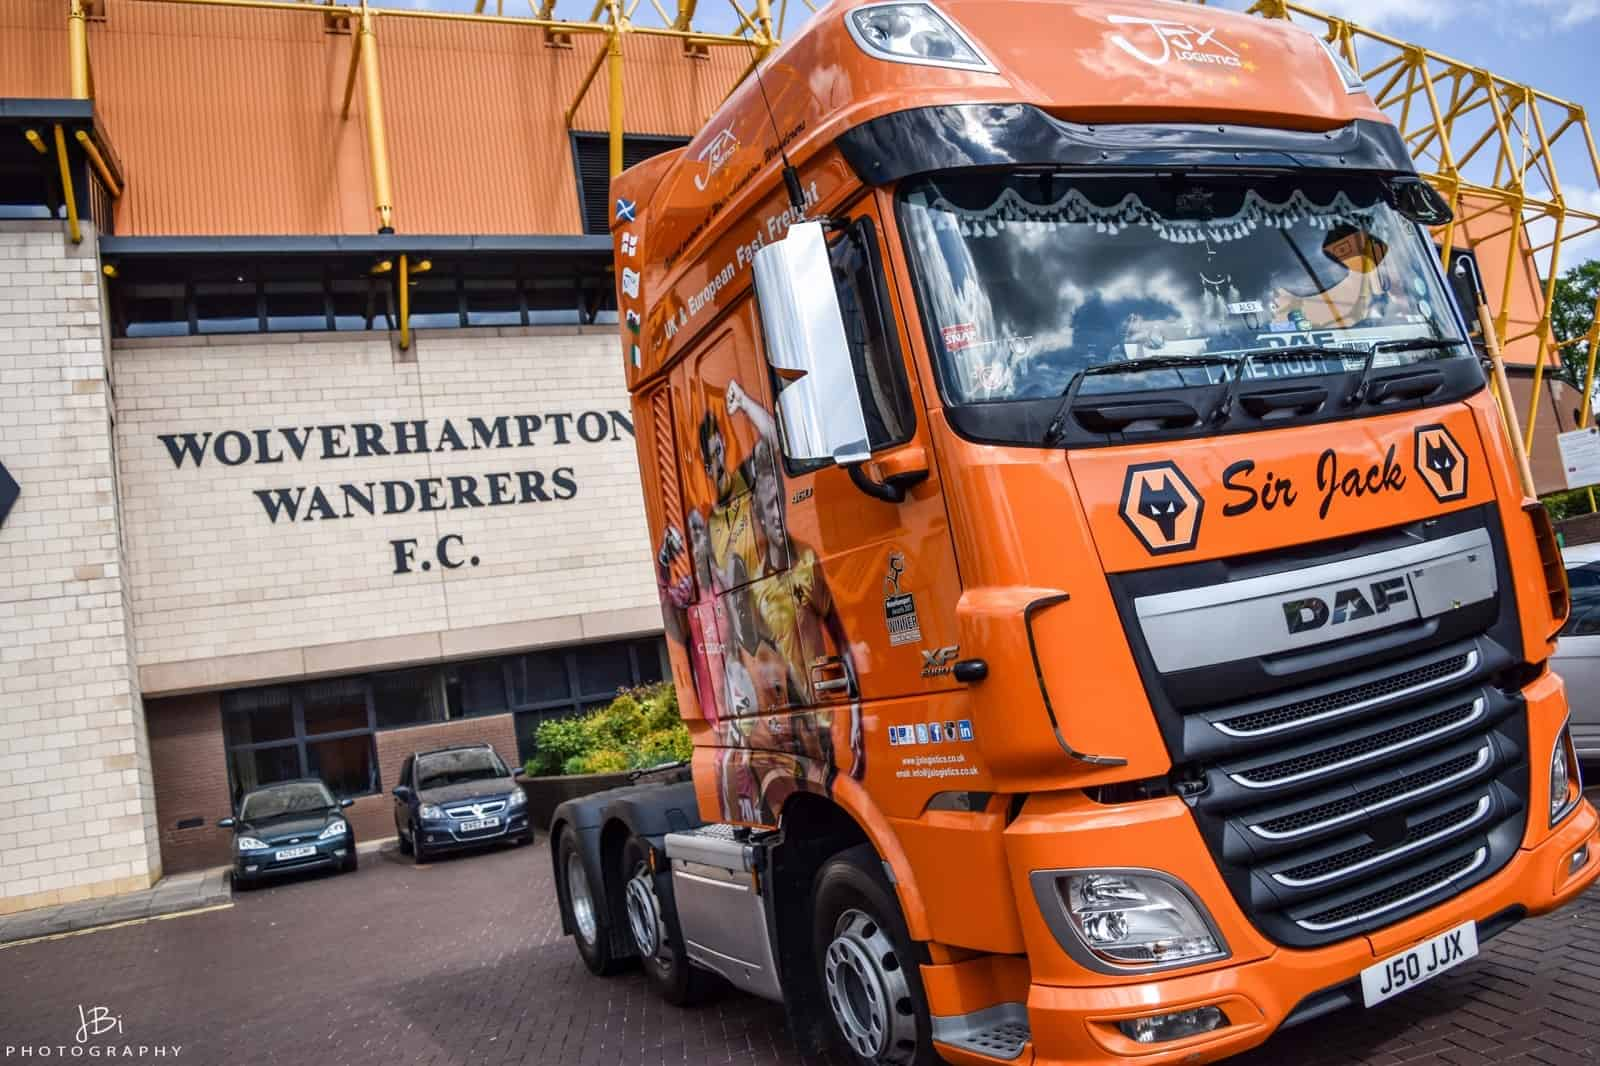 UP FOR AUCTION – DAF Wolves Truck